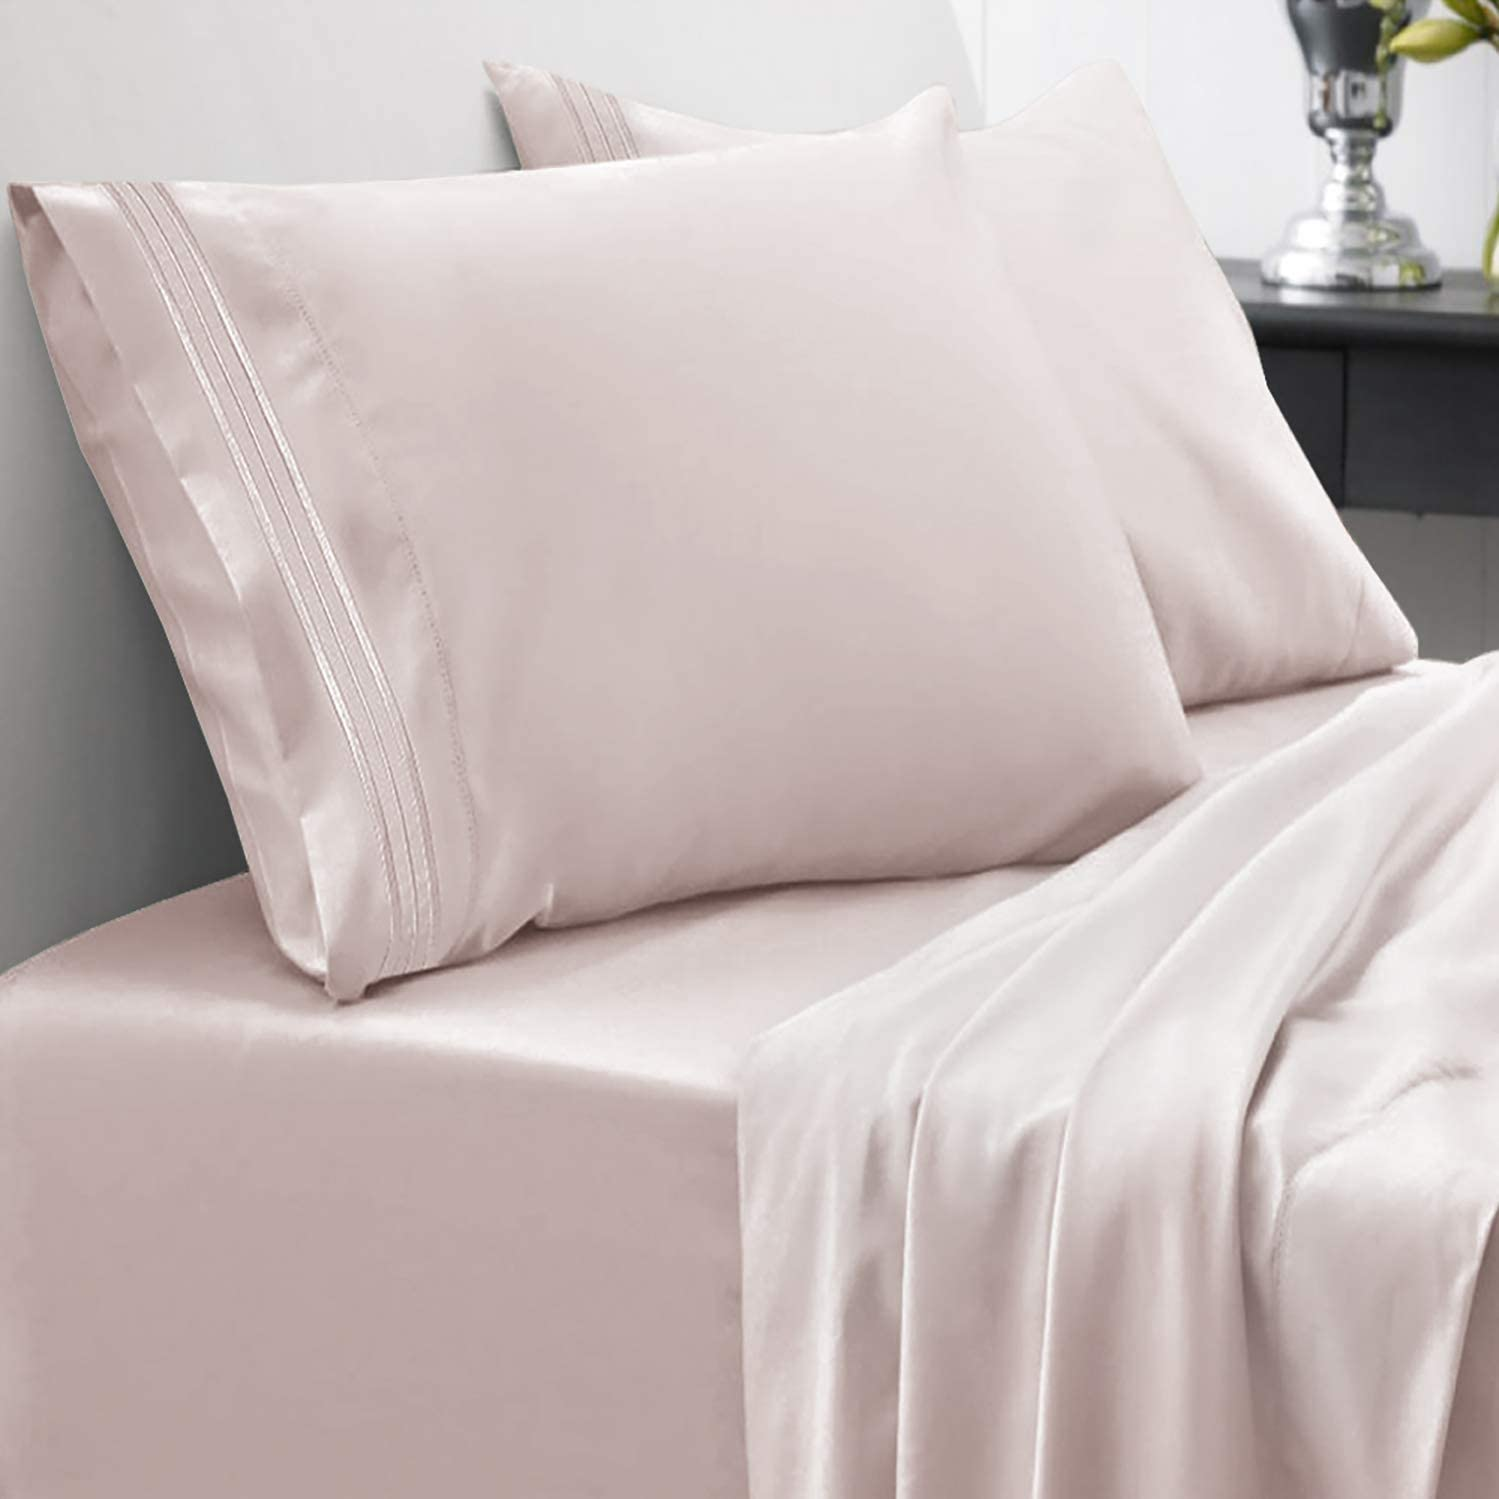 Sweet Home Collection 1800 Thread Count Soft Egyptian Quality Brushed Microfiber Hypoallergenic Luxury Bedding Set with Flat, Fitted Sheet, 2 Pillow Cases, Twin, Beige